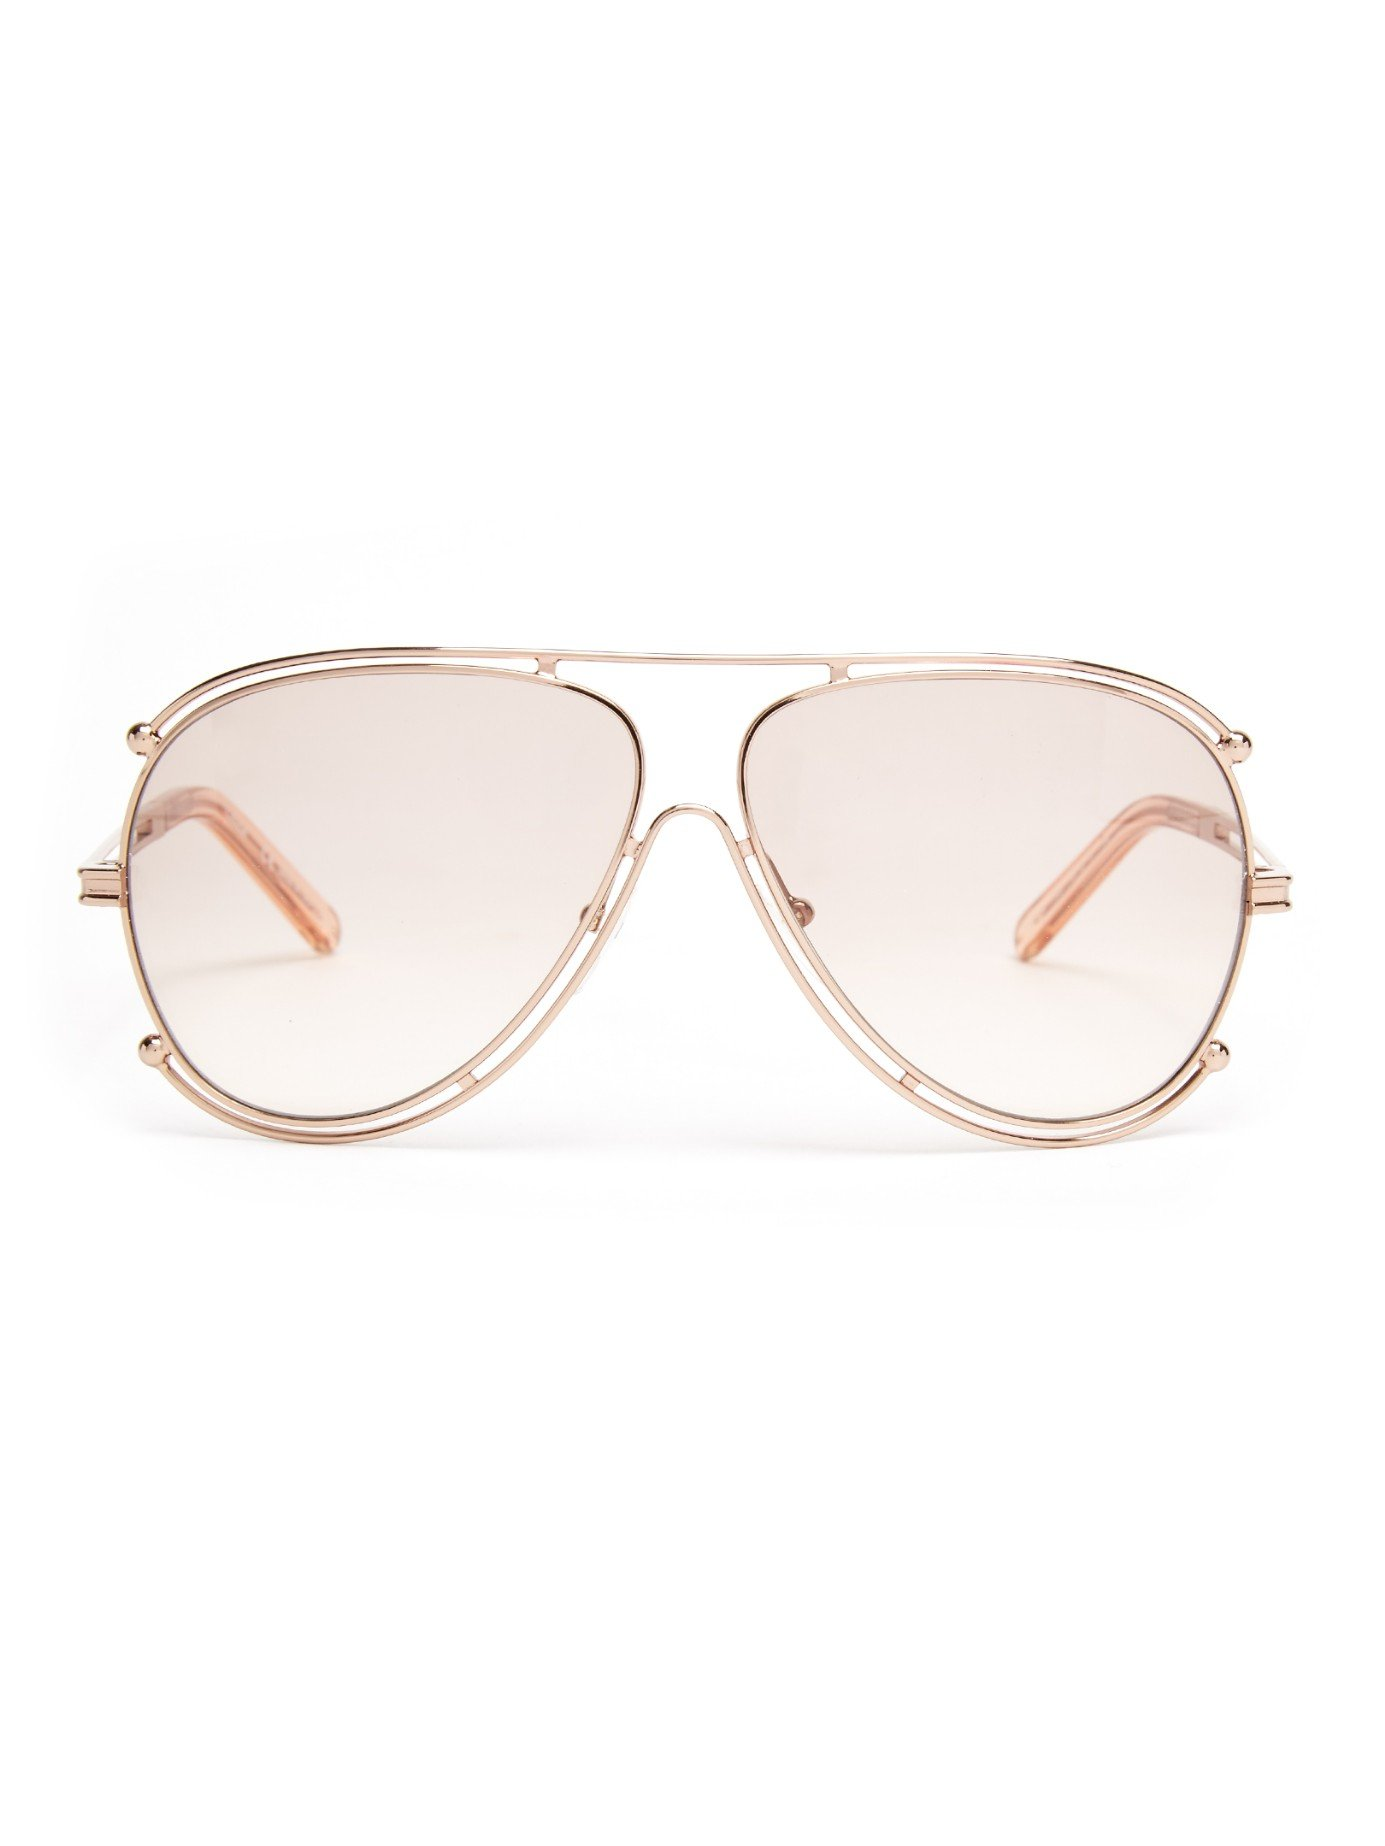 859ab41bf34a Lyst - Chloé Isidora Aviator Sunglasses in Pink